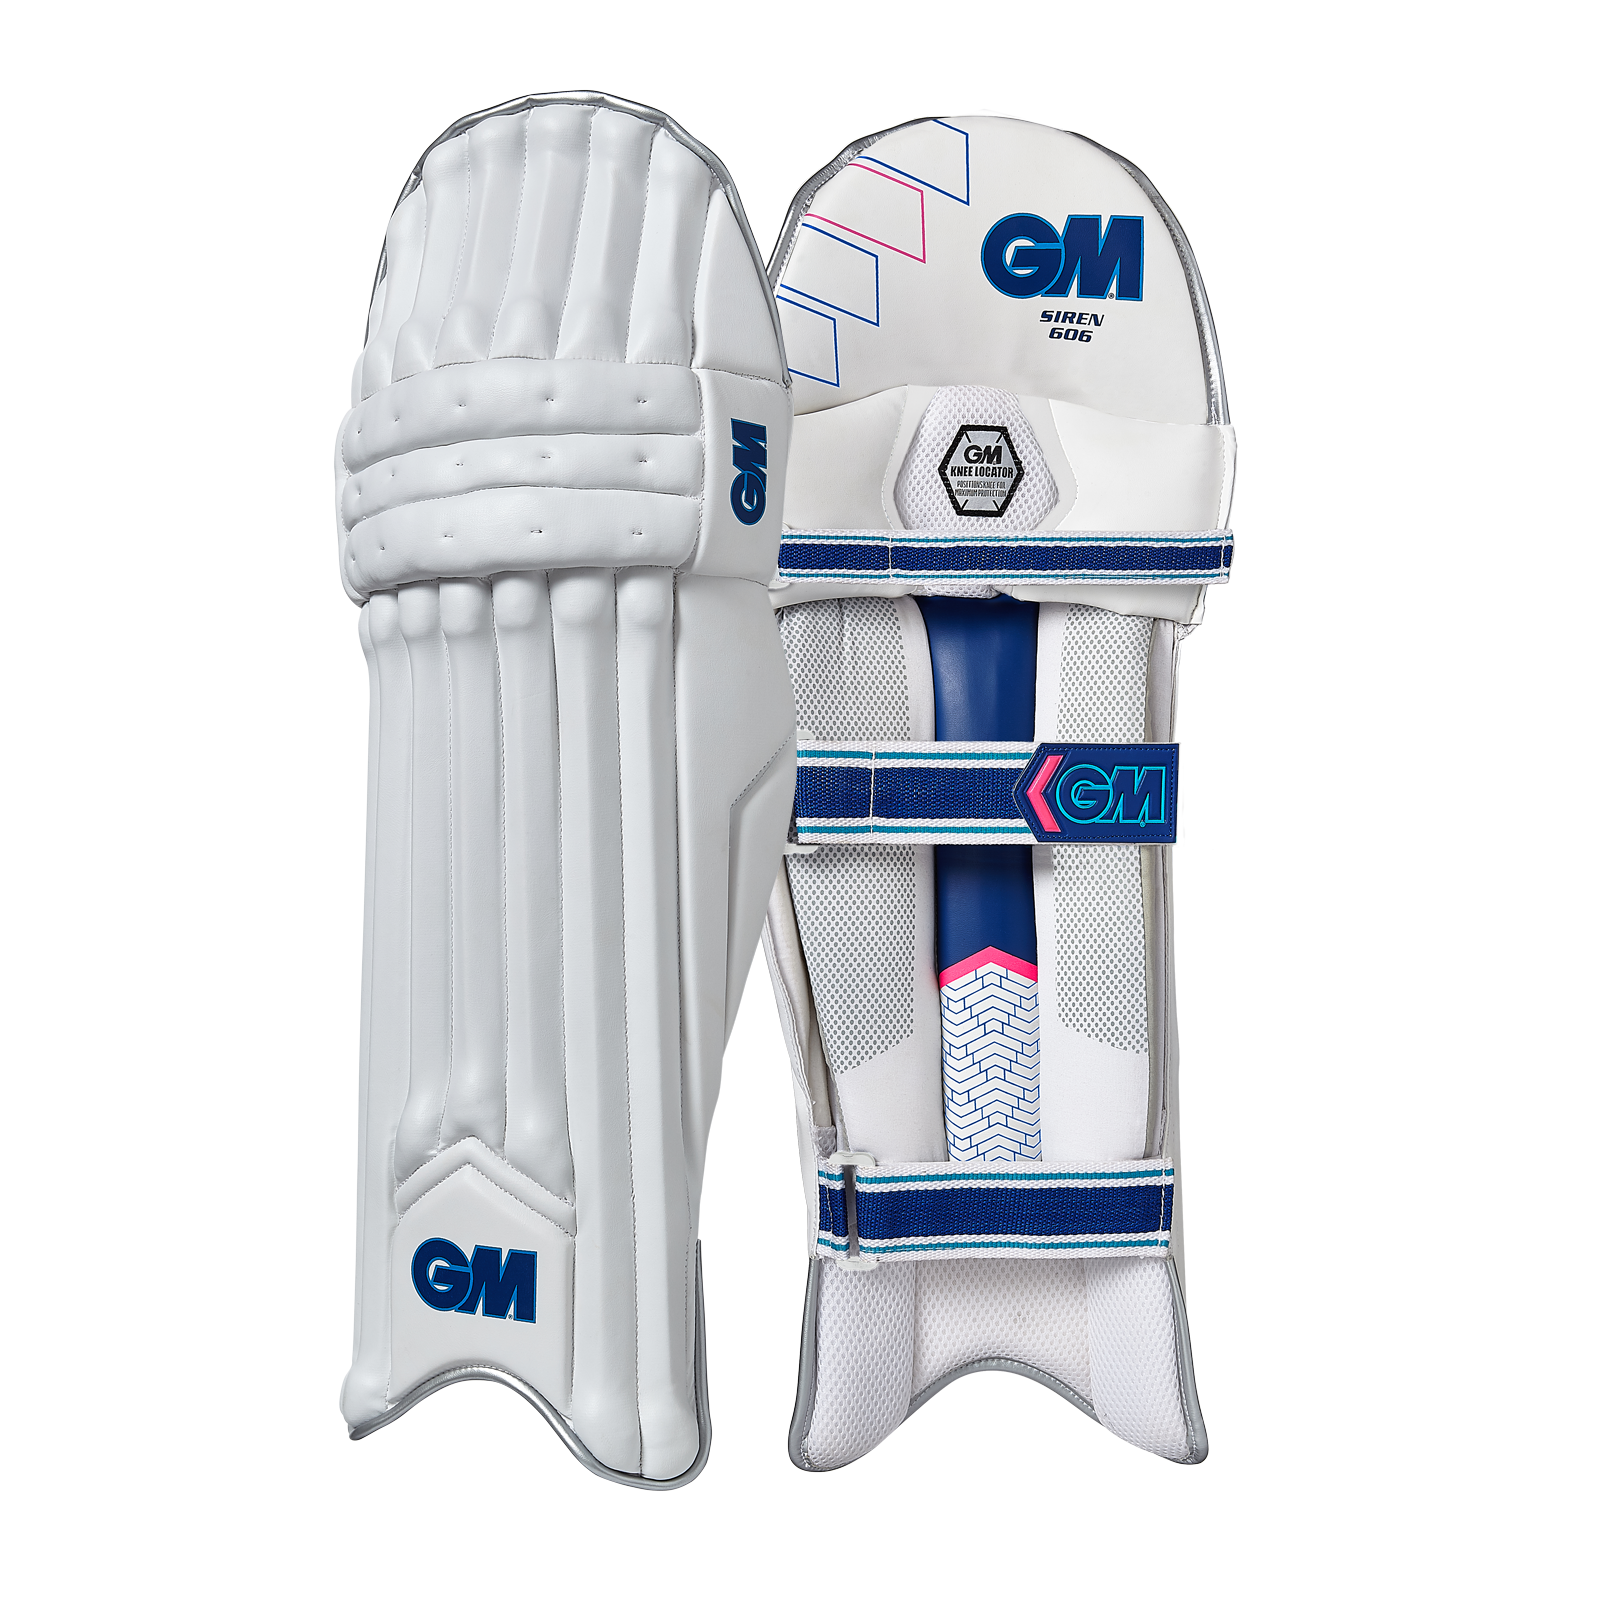 2021 Gunn and Moore Siren 606 Batting Pads